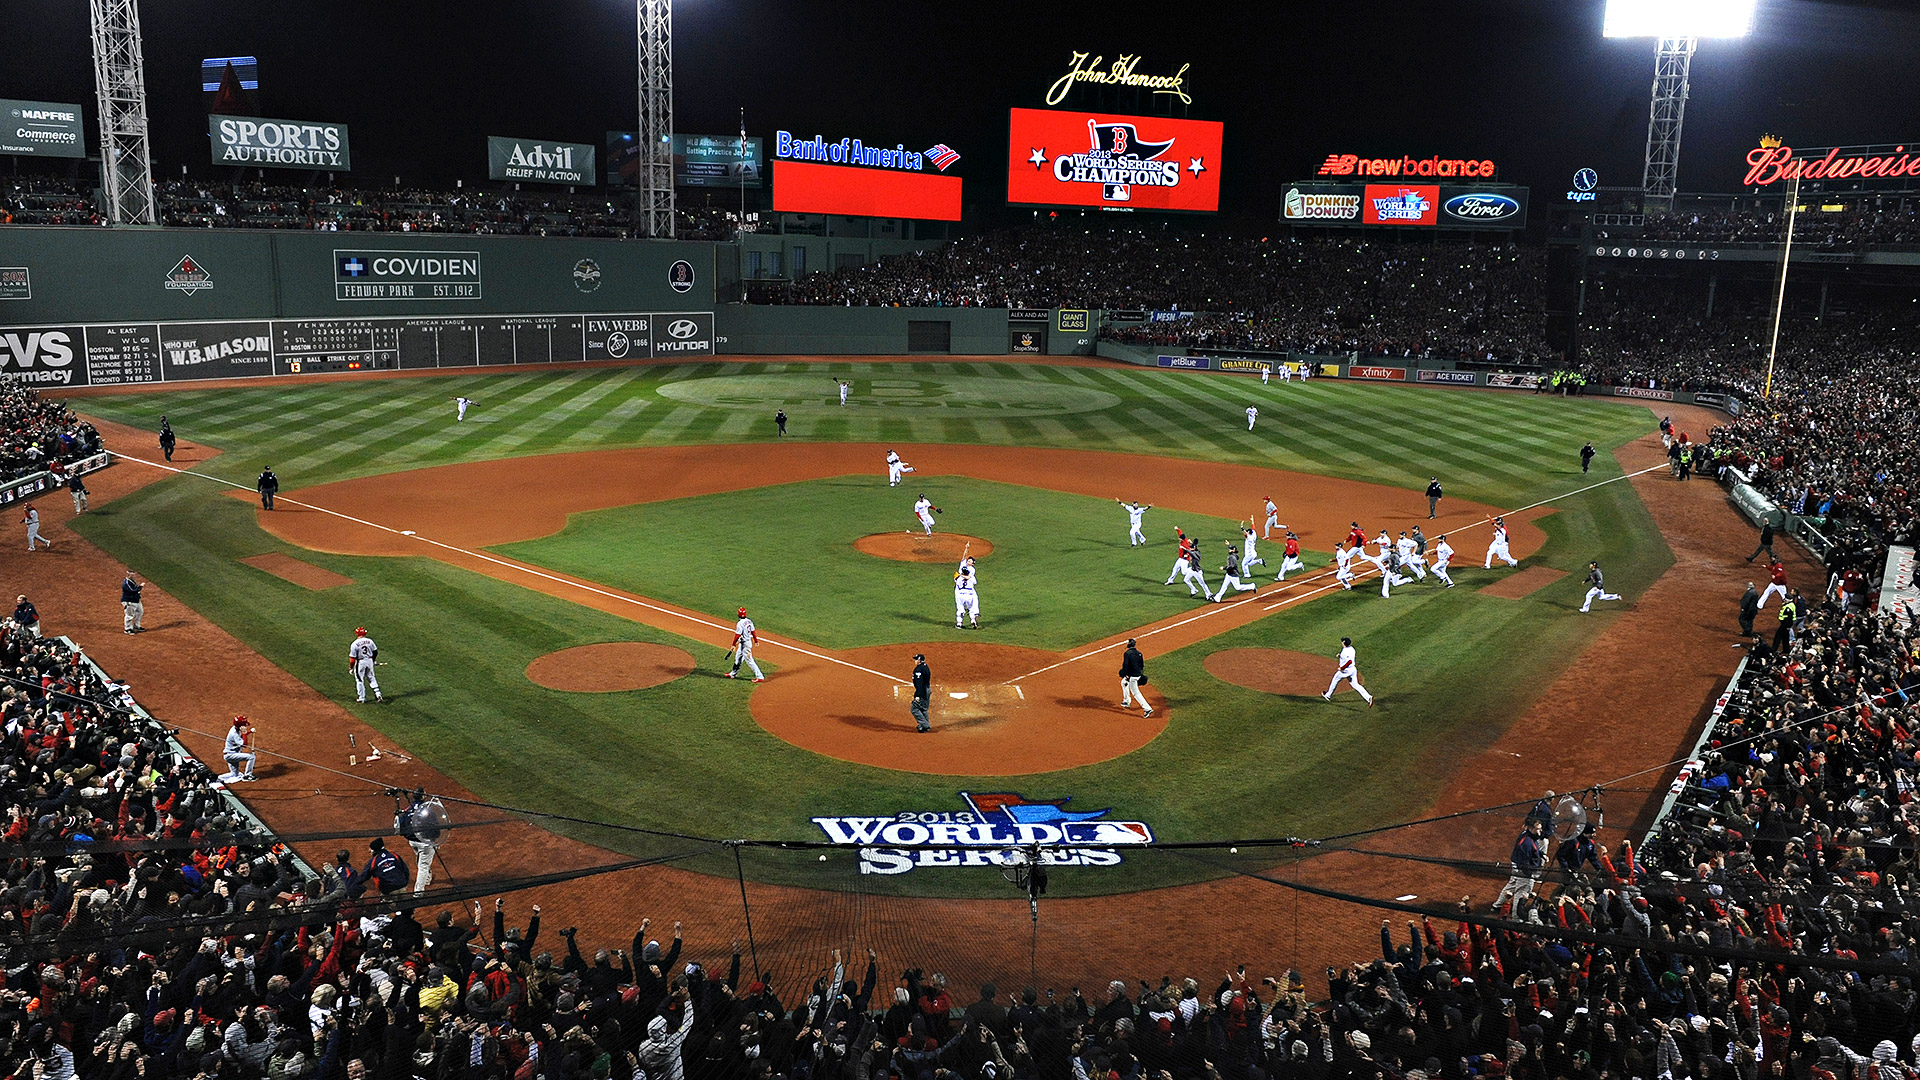 Red Sox vs. Cardinals, 2013 World Series Game 5 final ...